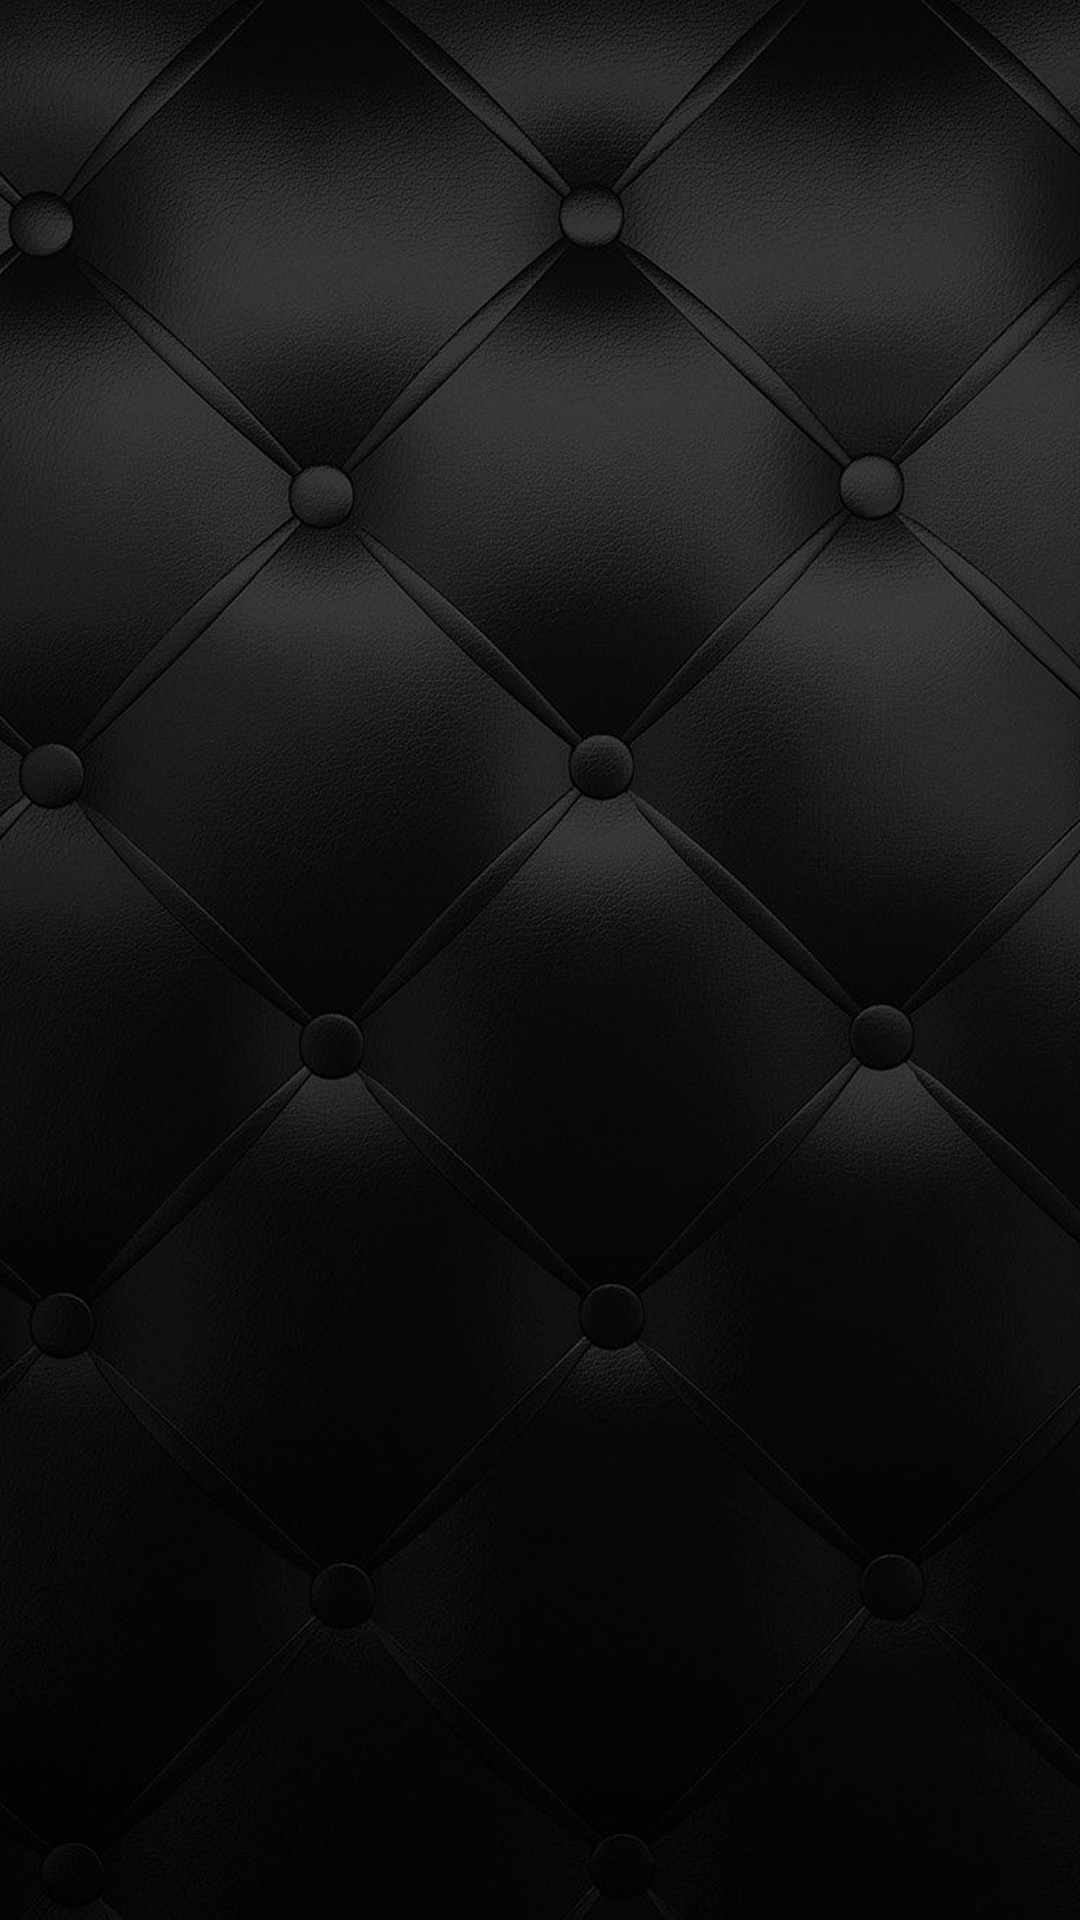 Cool Home Screen Wallpapers (68+ images)